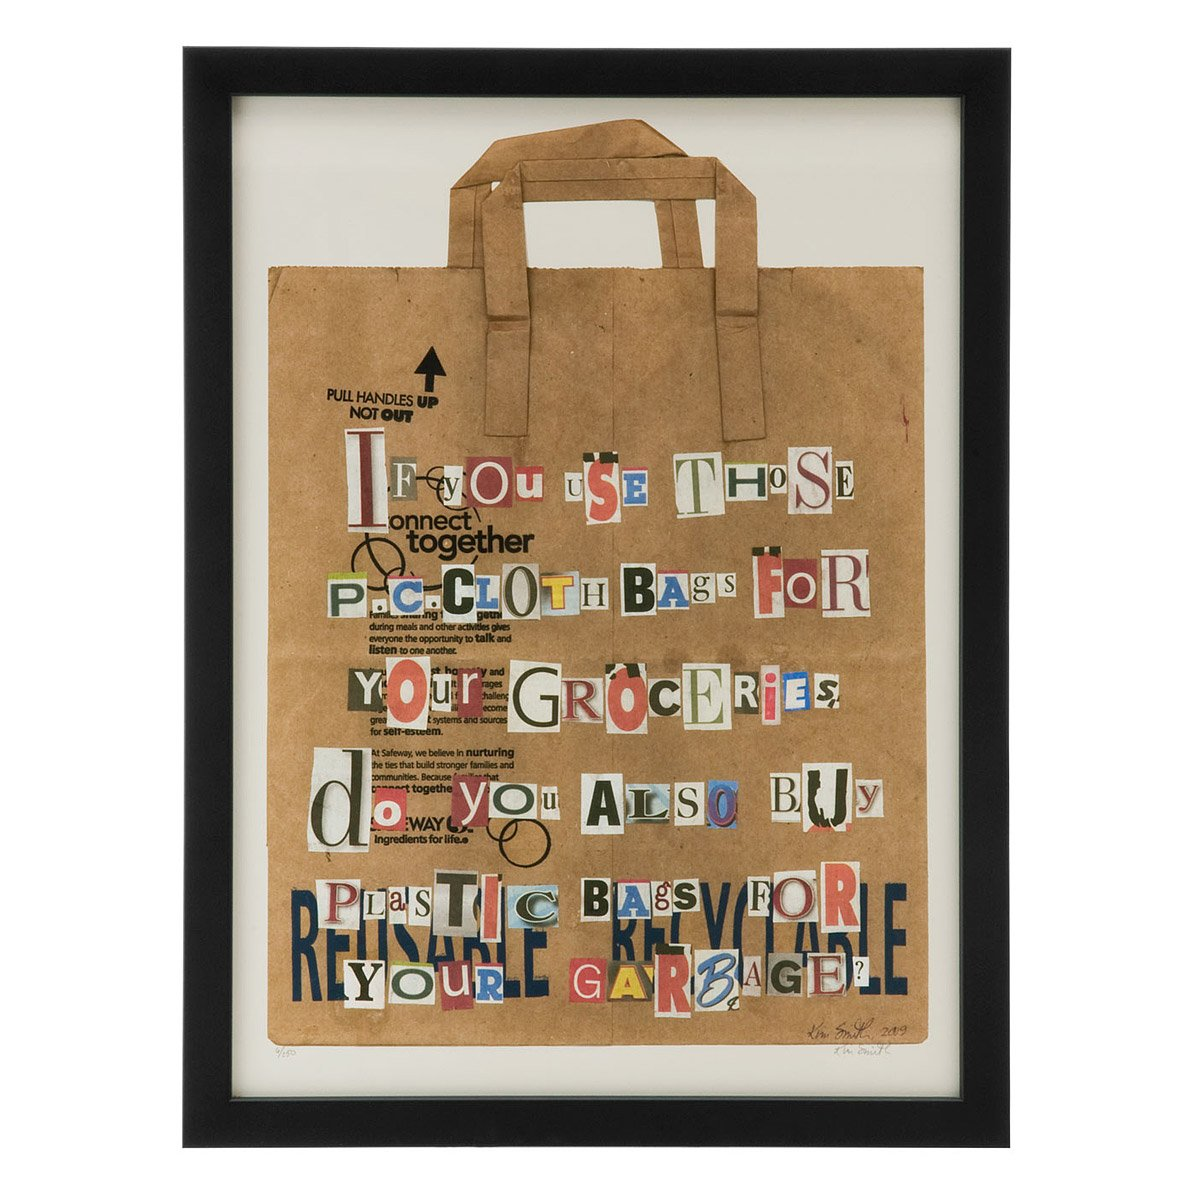 Paper Bag | Papers, Bags, Grocery, Recycle, Artwork, Collage ...